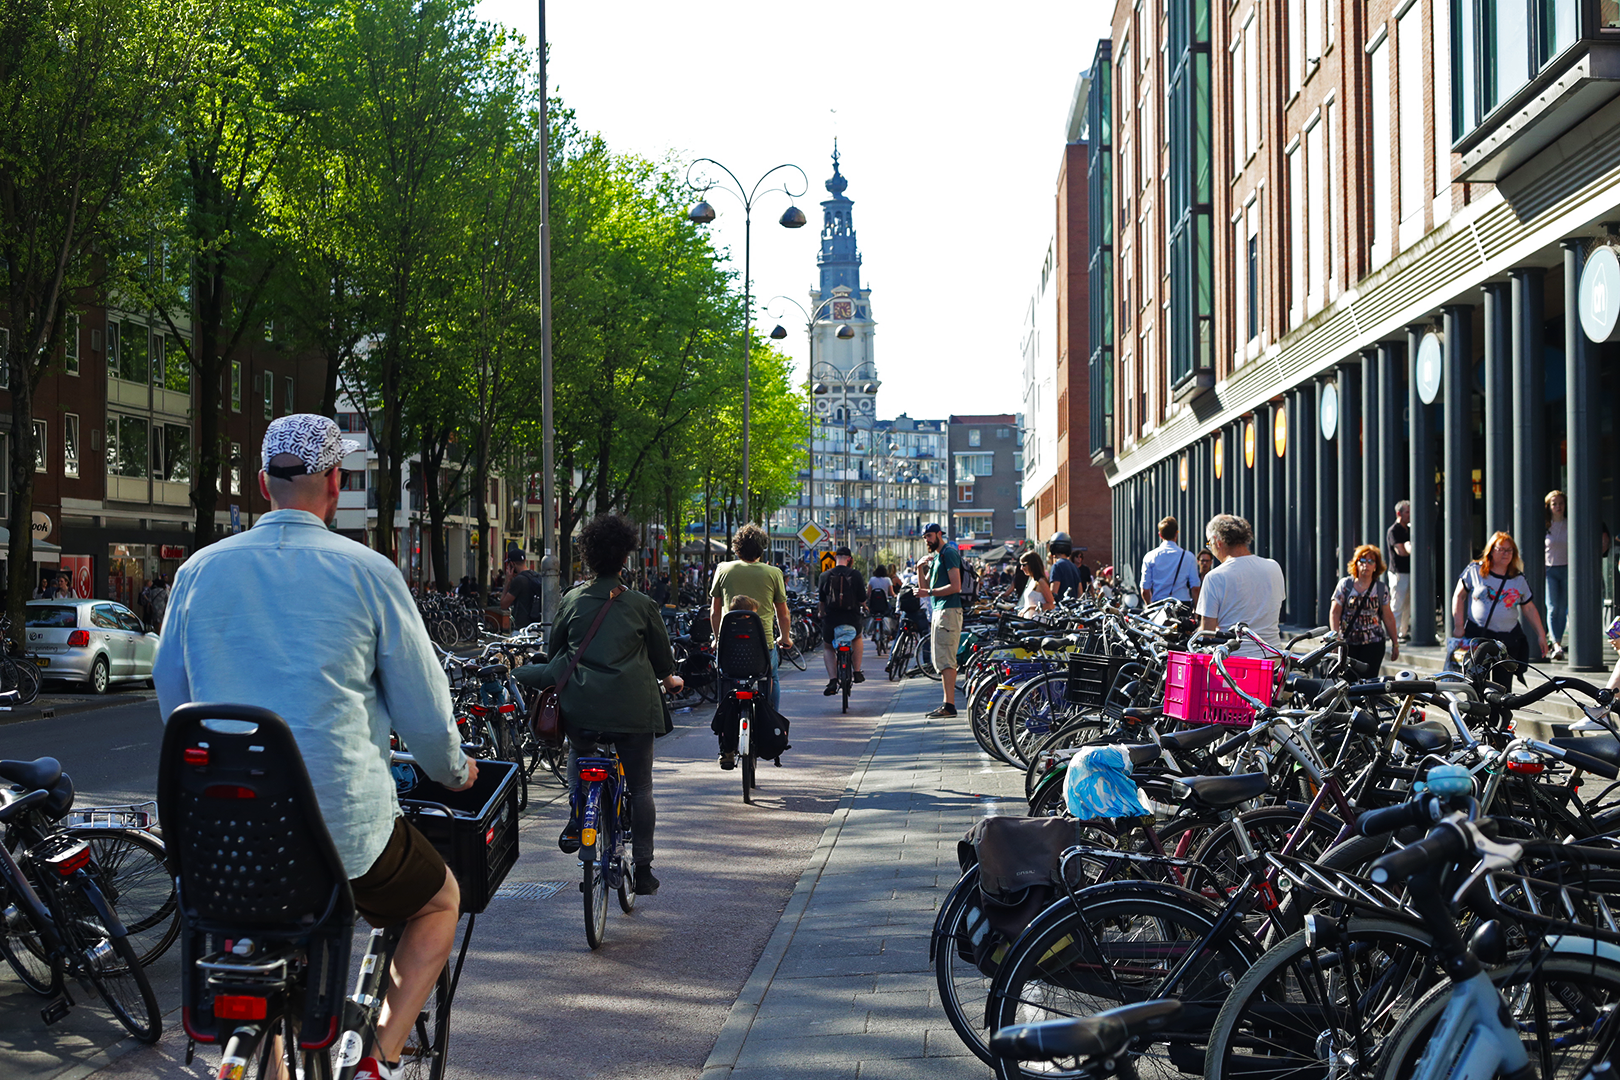 Carving out room for all the bikes to park in Amsterdam is difficult, usually leading to streets packed with bikes like Jodenbreestraat pictured here